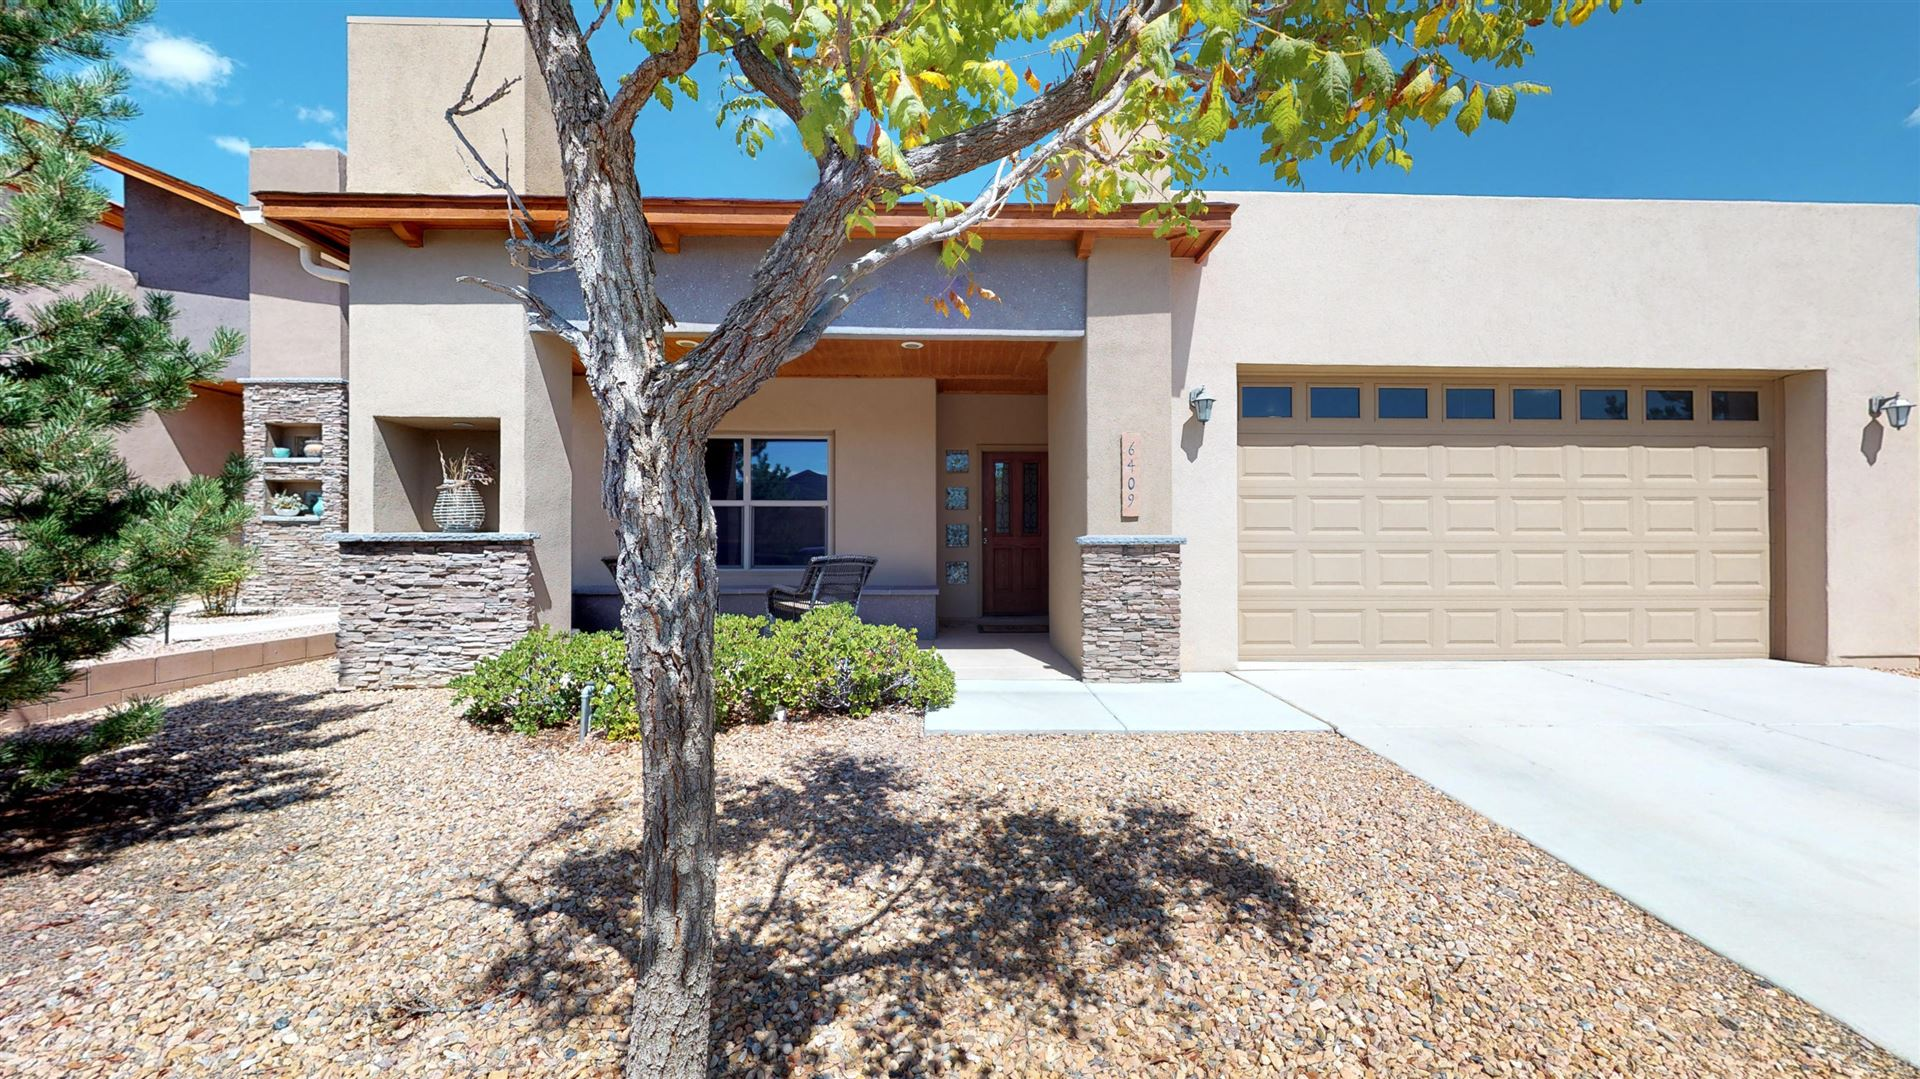 6409 SINCHO Avenue NW, Albuquerque, NM 87114 - #: 965734